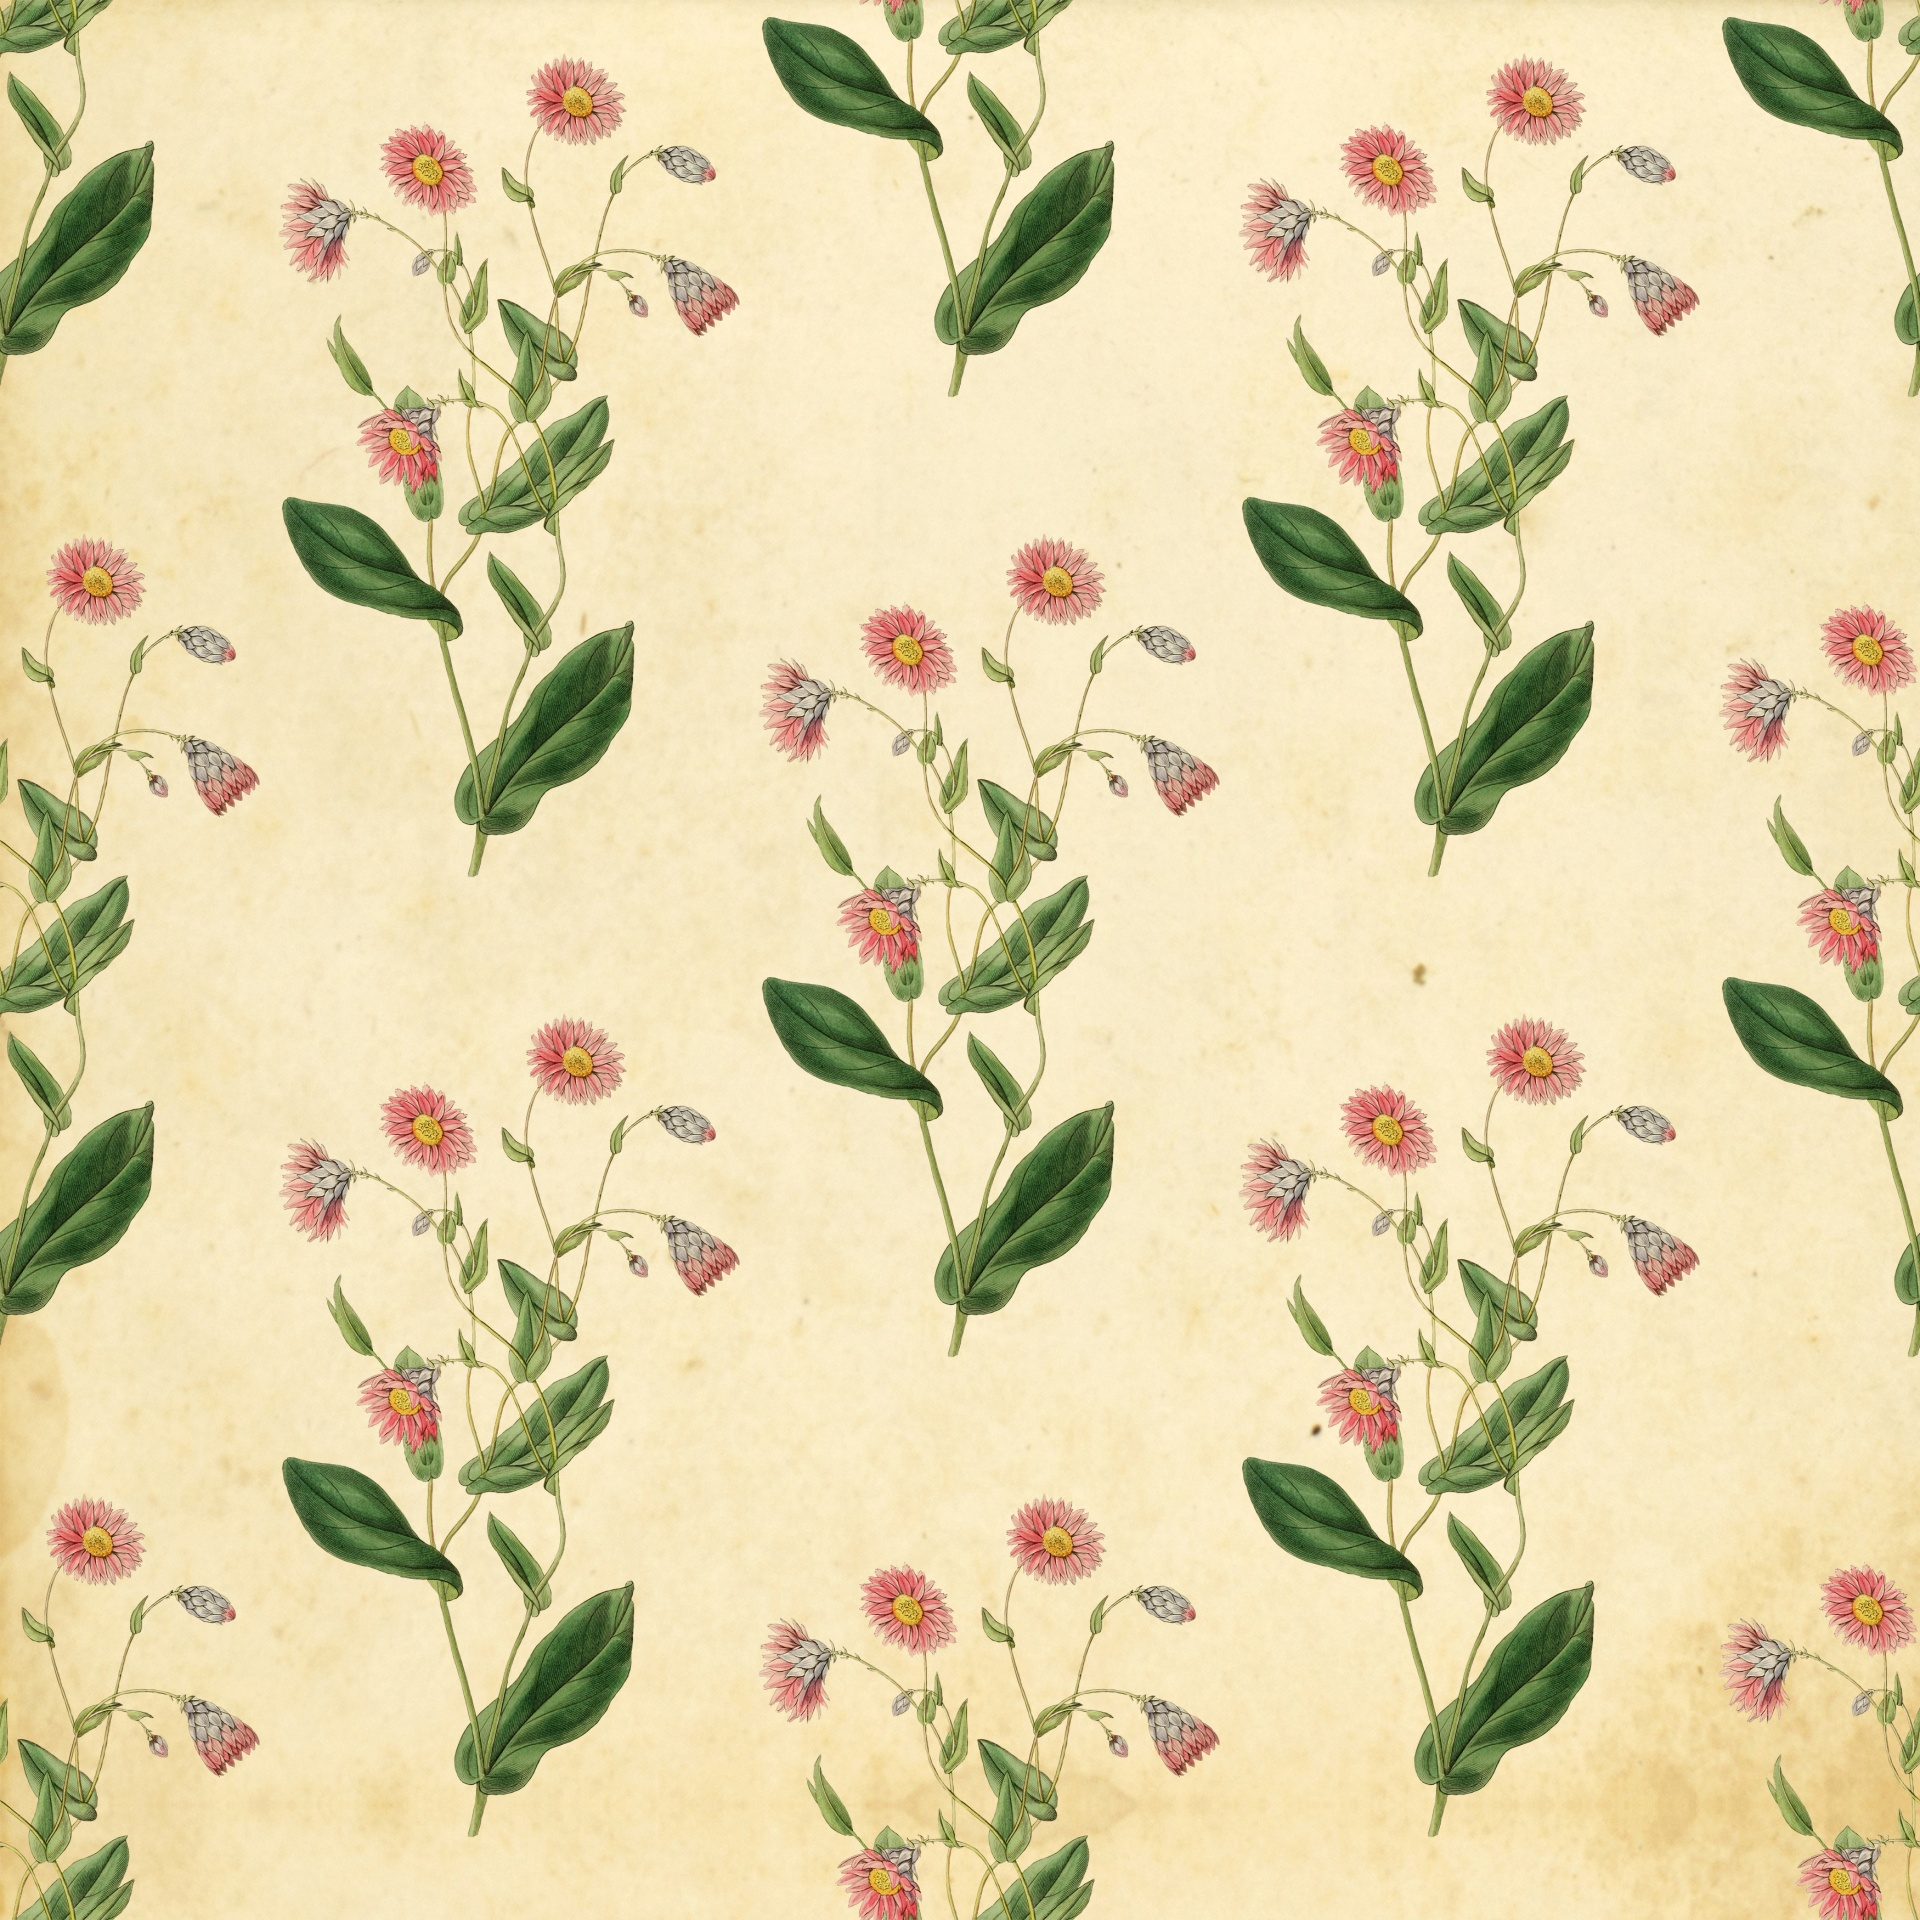 Floral Vintage Wallpaper Background Free Stock Photo Public Domain Pictures